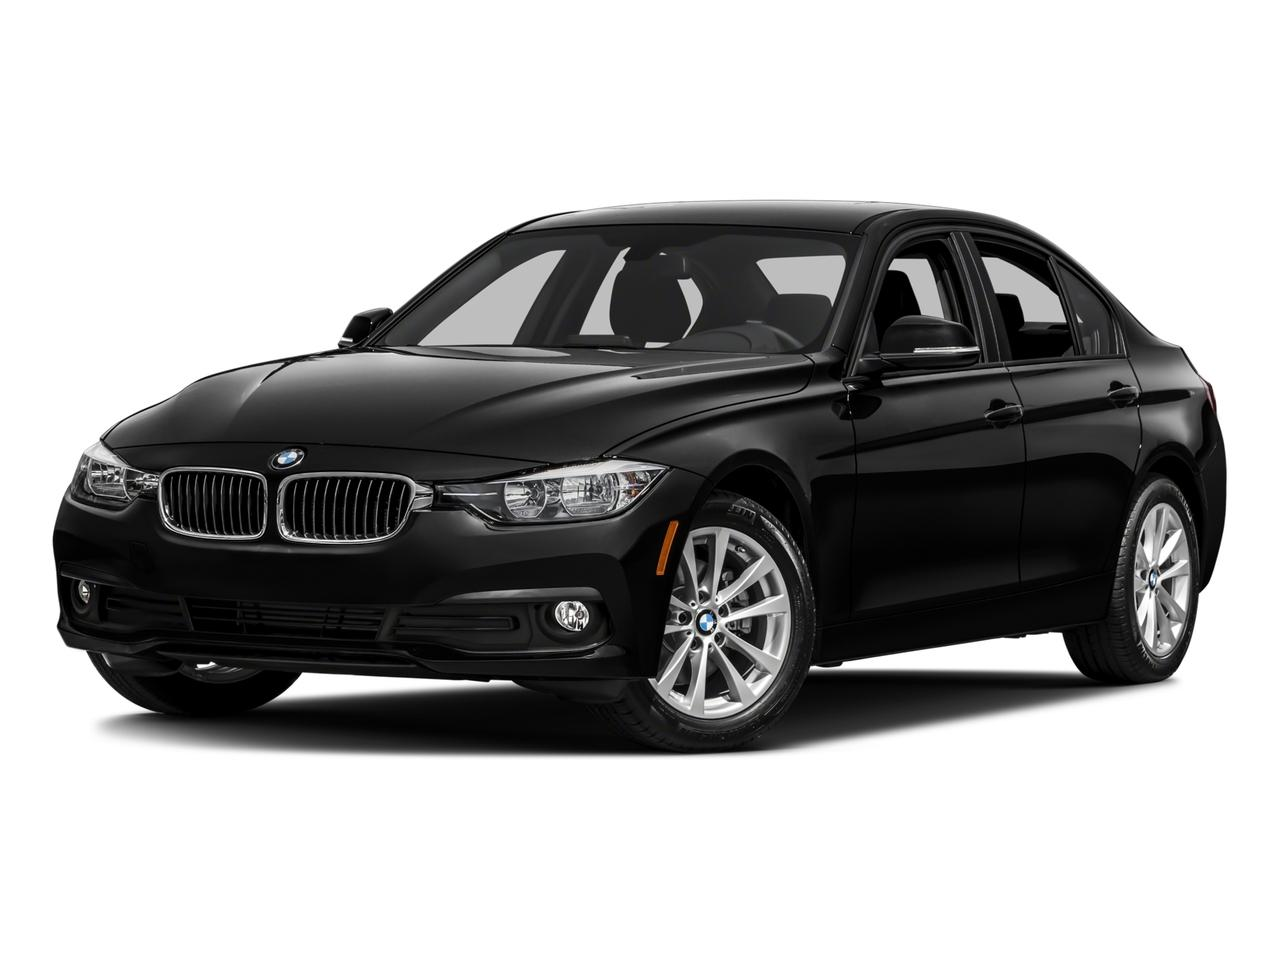 2016 BMW 320i Vehicle Photo in Arlington, TX 76011